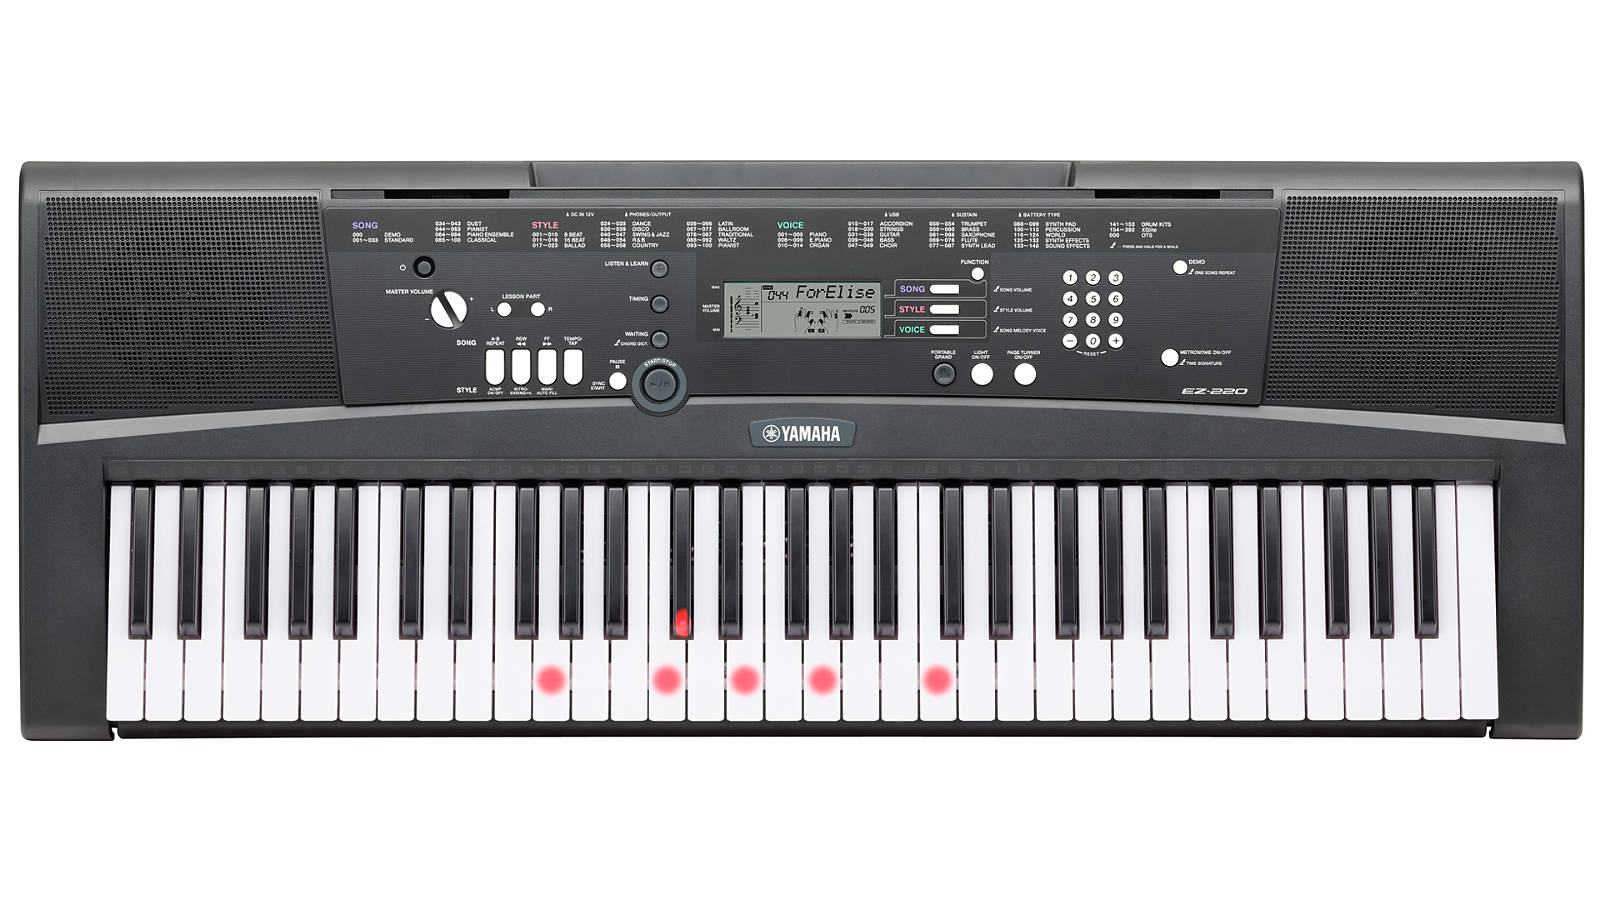 yamaha ez 220 keyboard. Black Bedroom Furniture Sets. Home Design Ideas